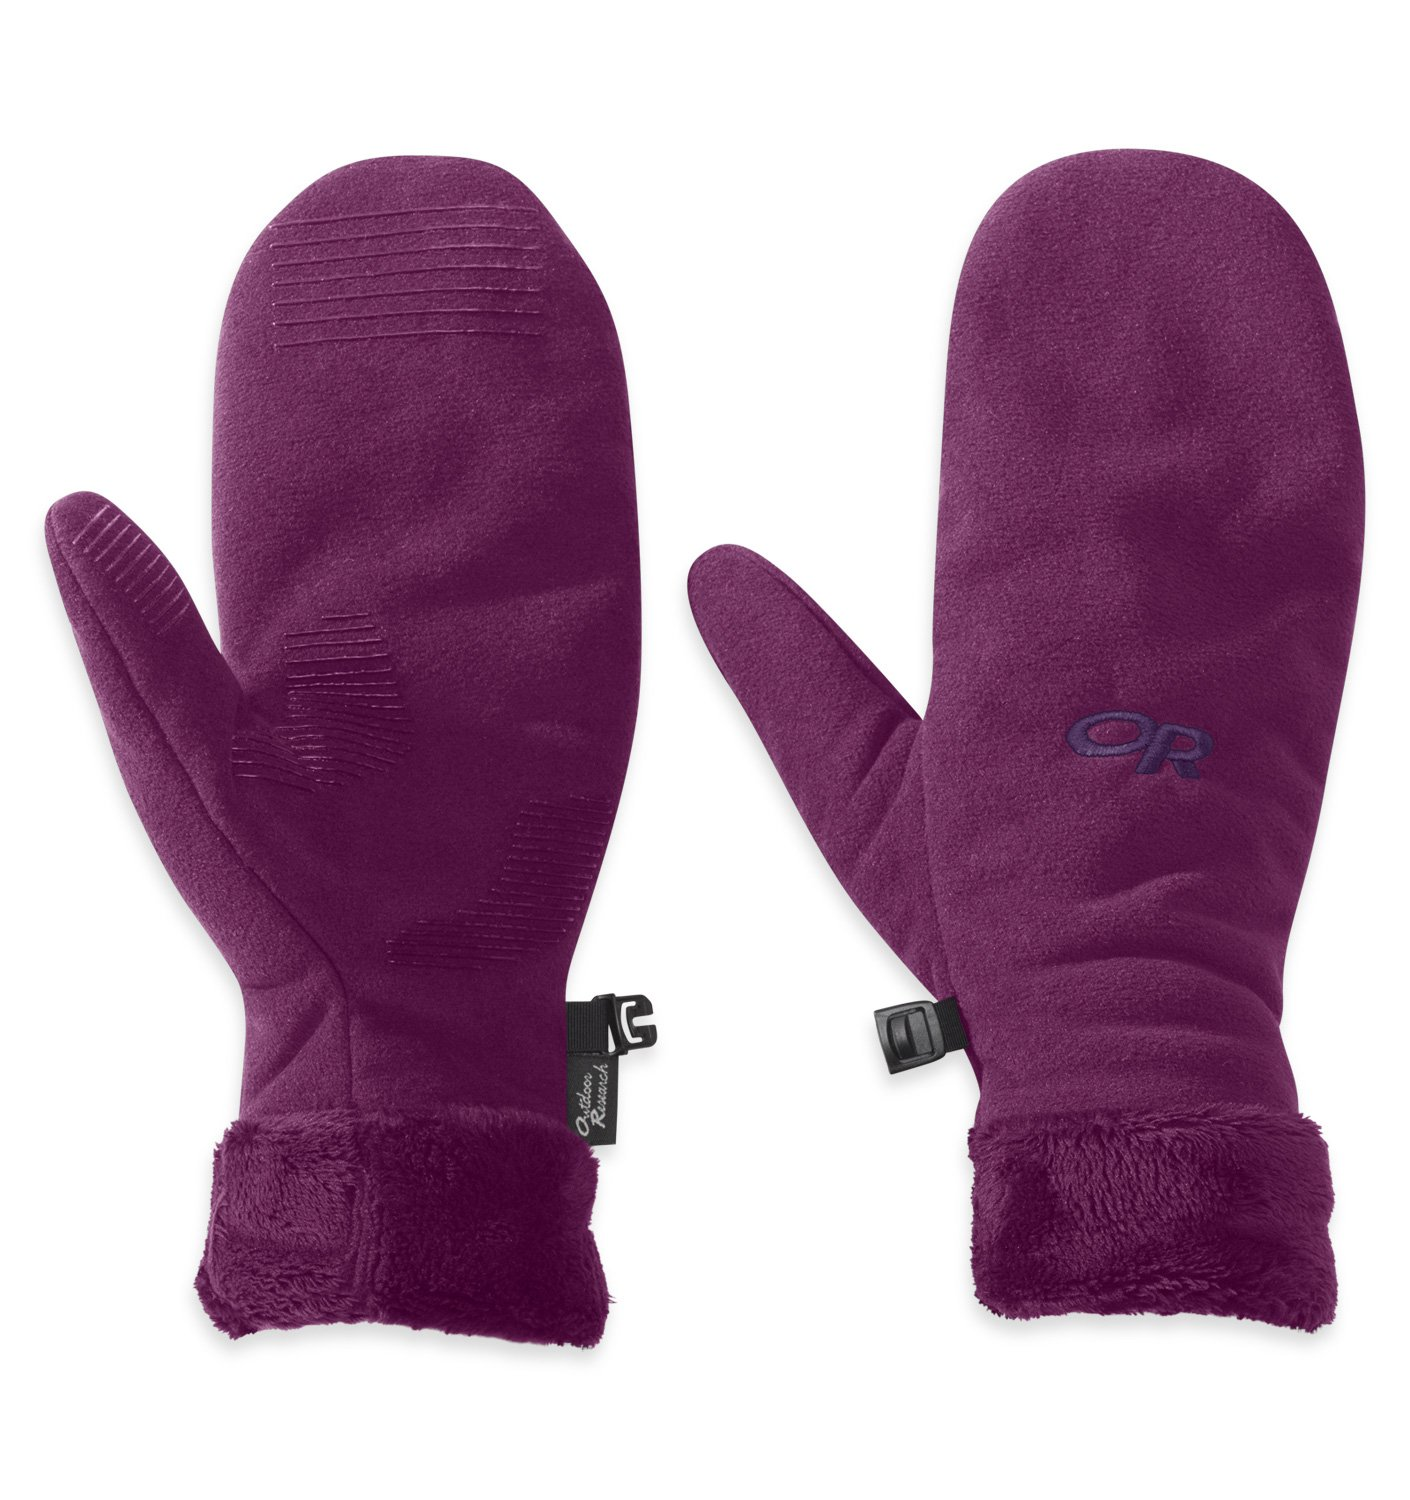 Outdoor Research Women's Fuzzy Mitts, Orchid, Medium